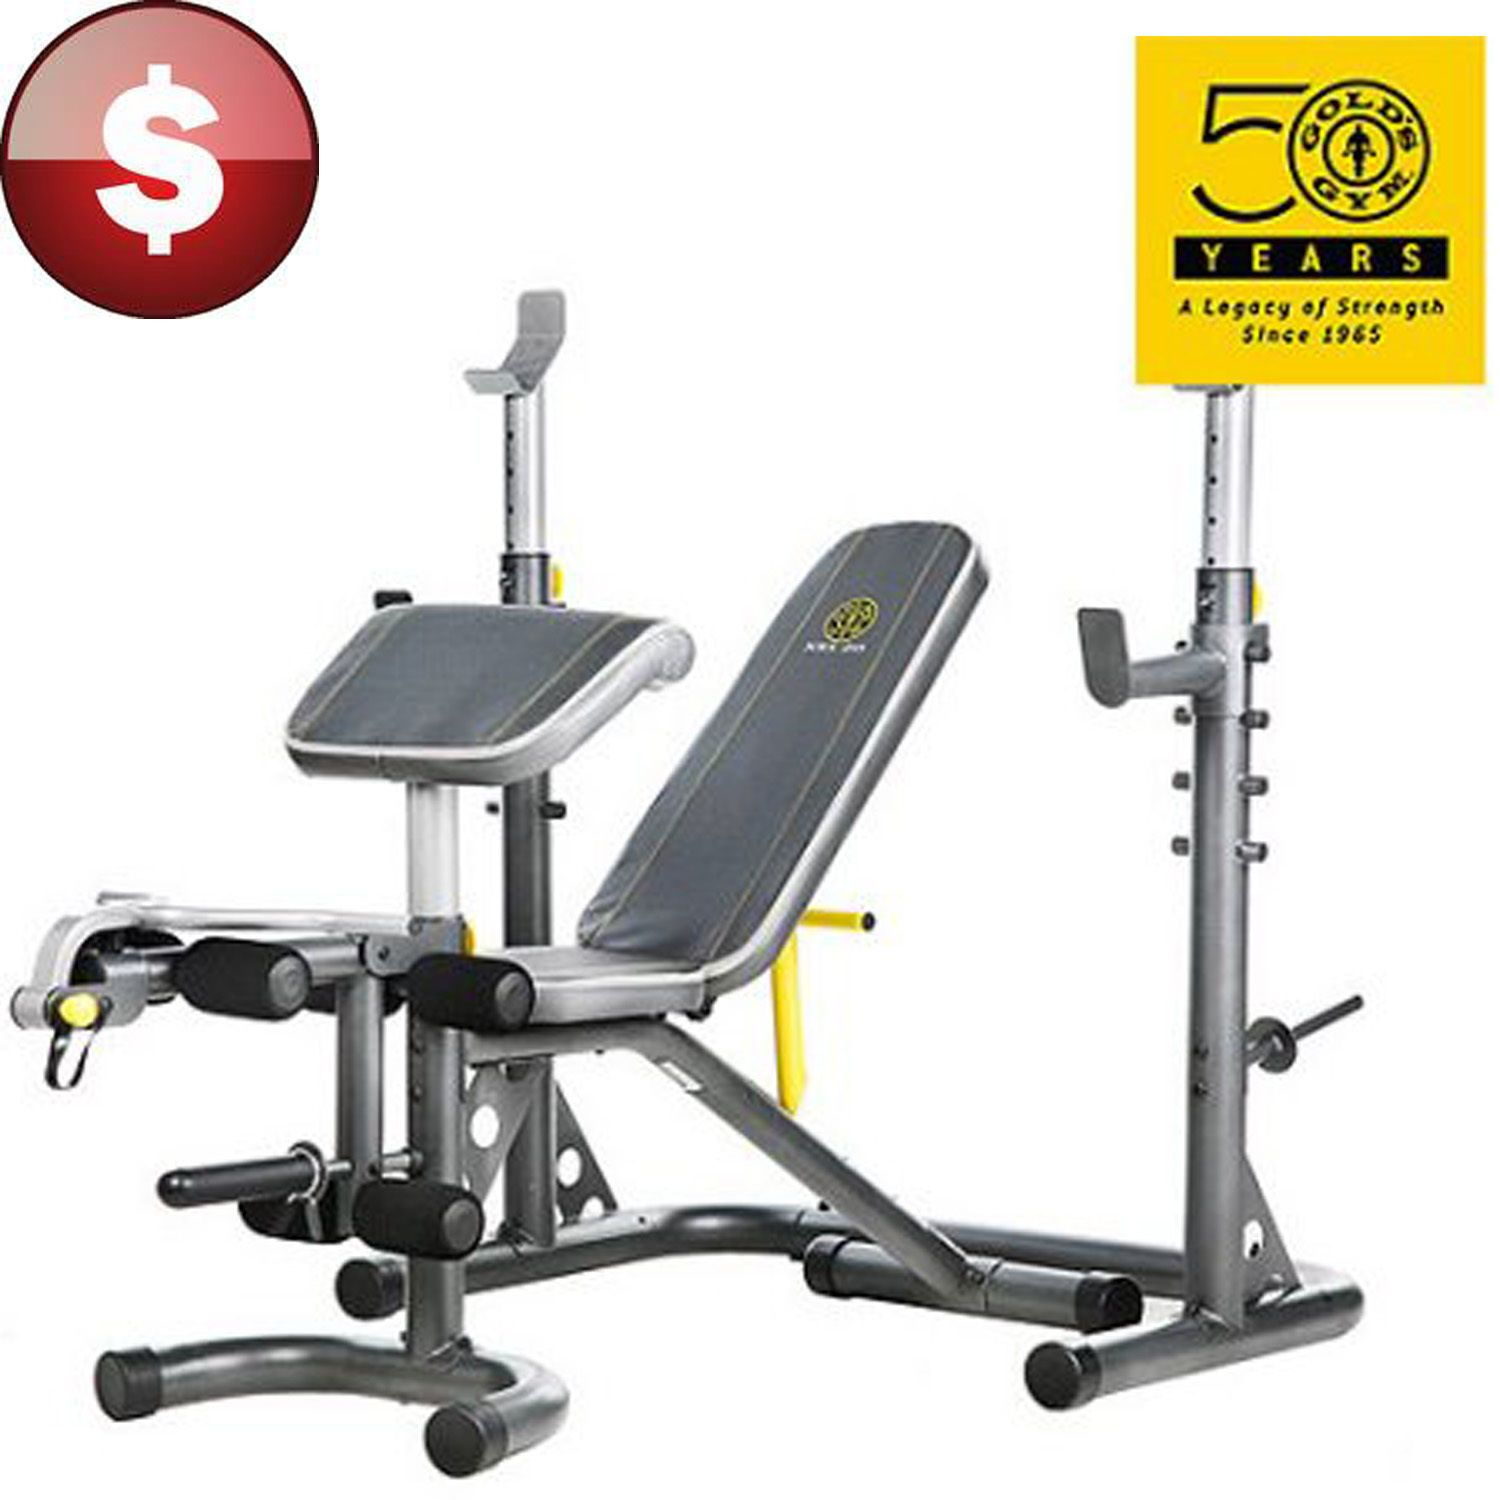 Golds gym bench and rack olympic weight workout